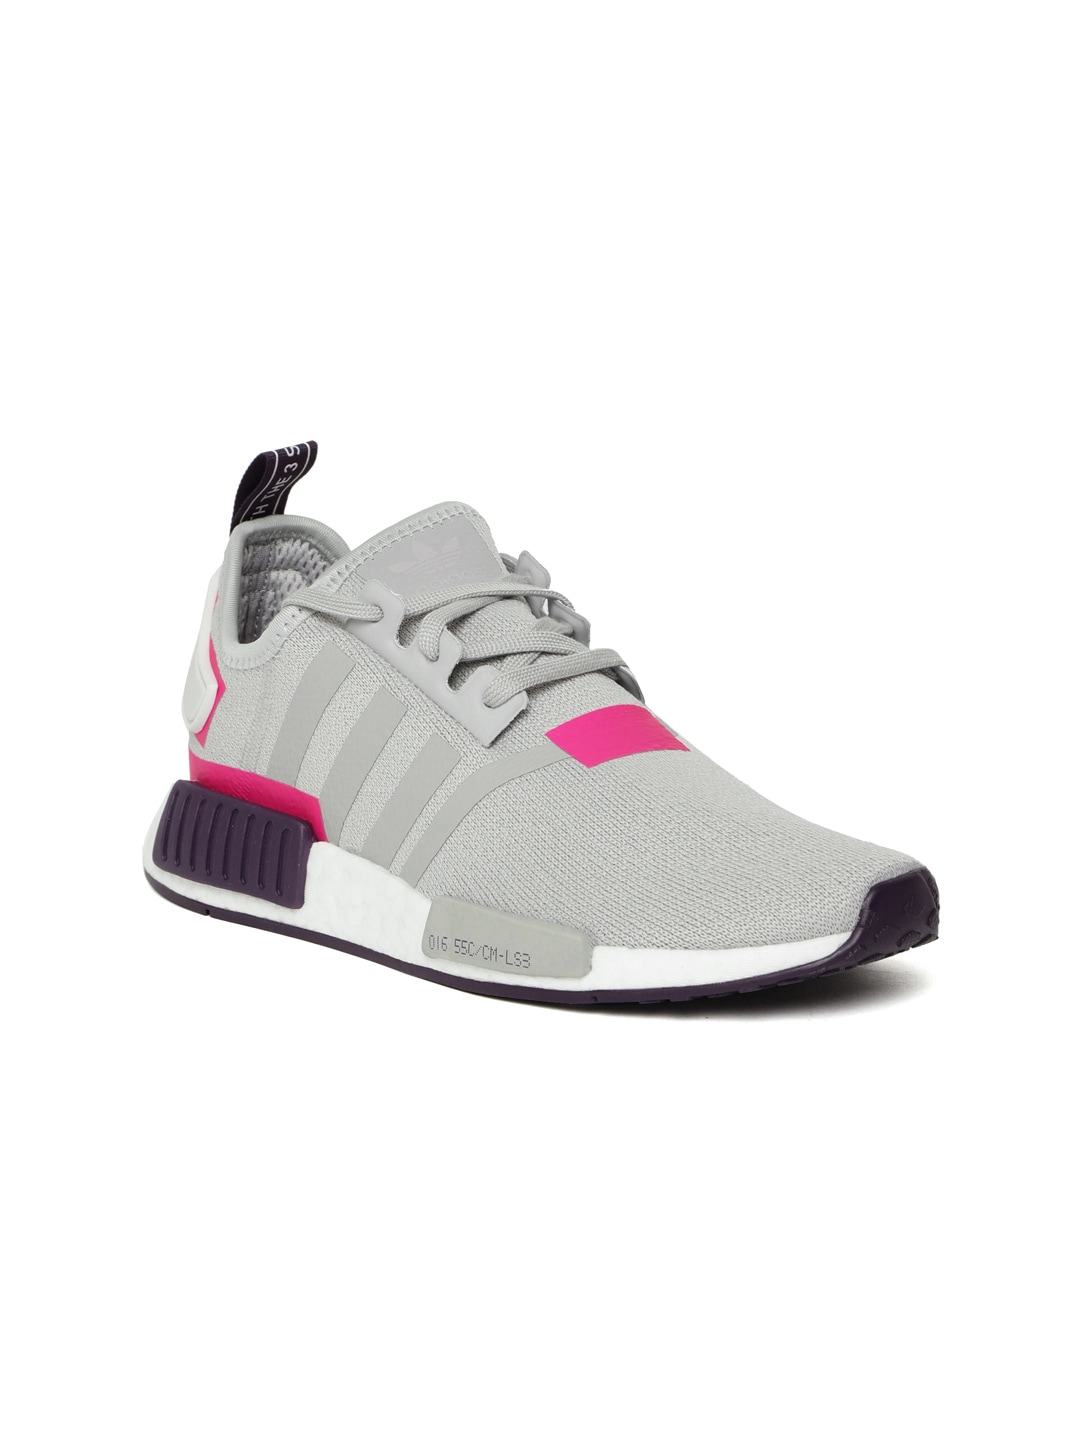 04c942df8 Women s Adidas Shoes - Buy Adidas Shoes for Women Online in India